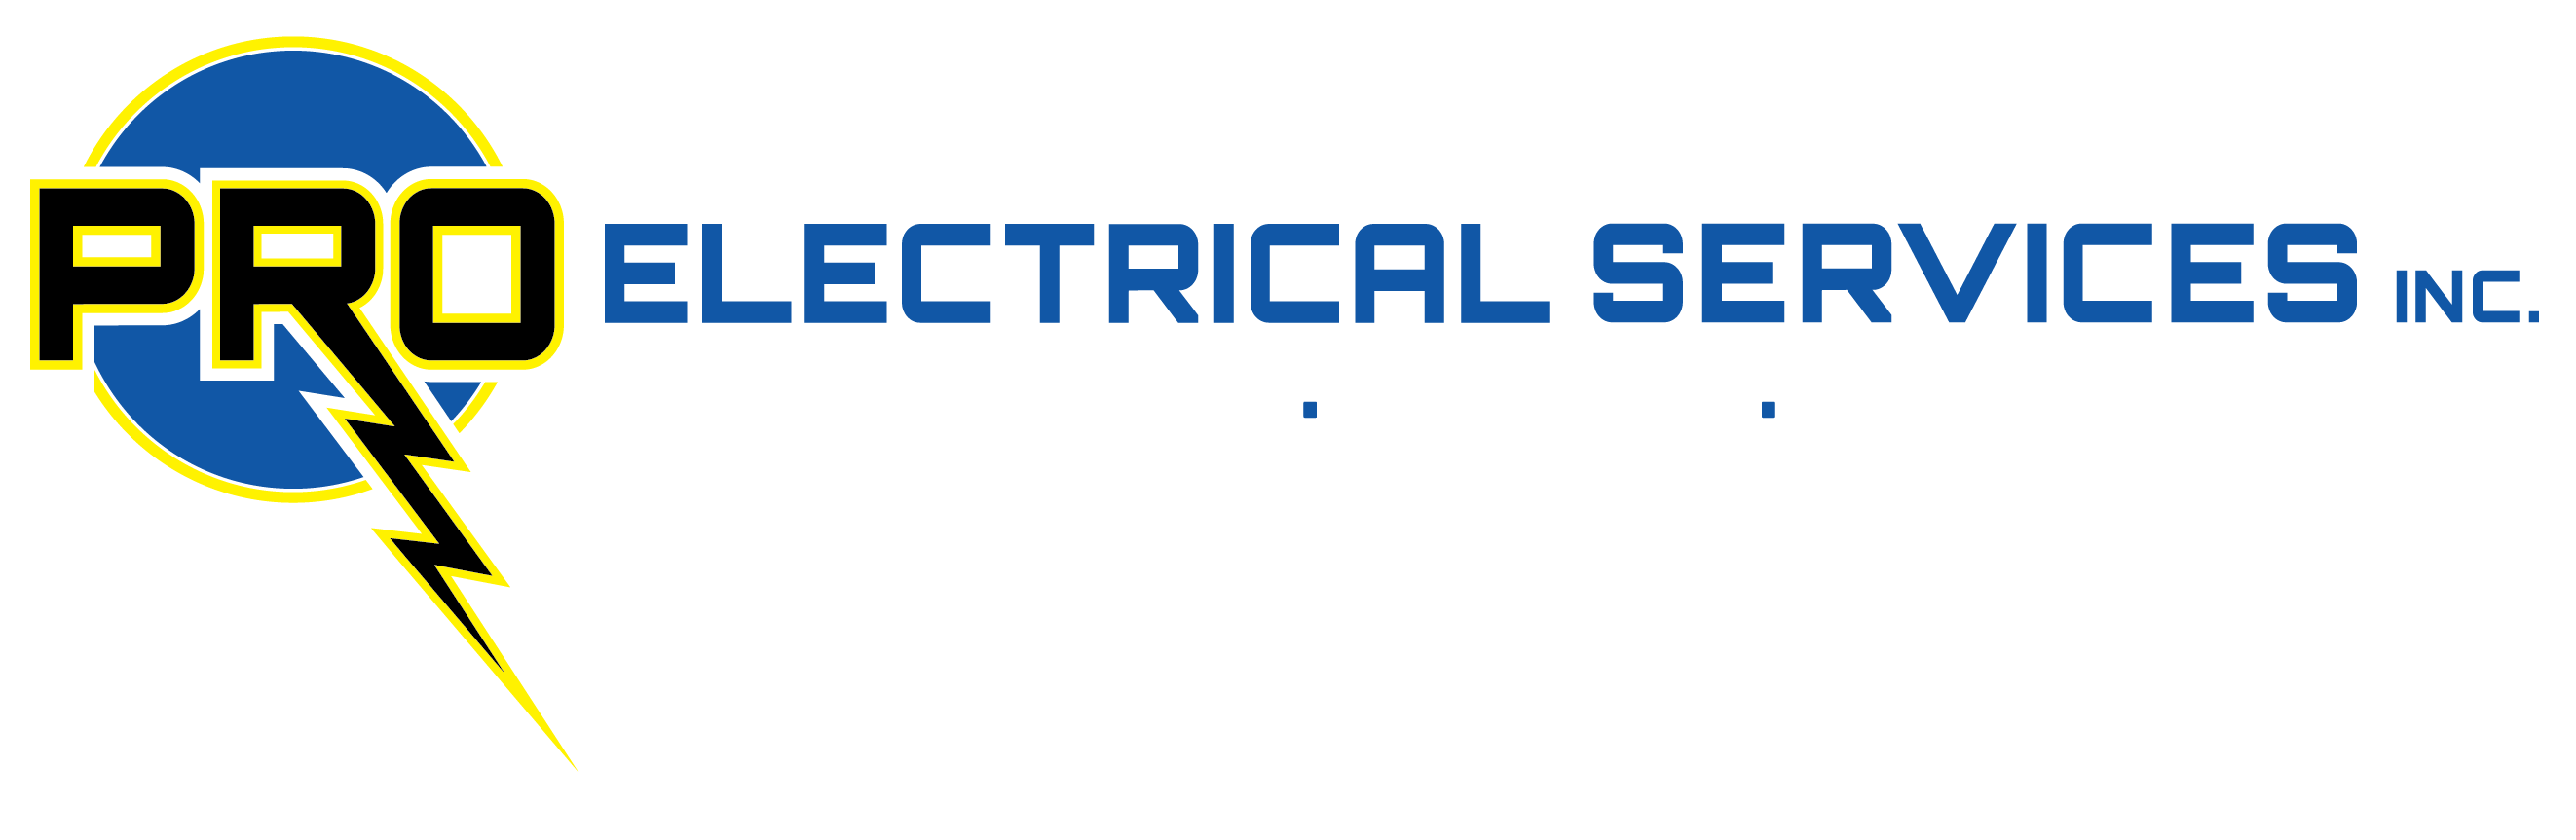 94266b4c-0bec-408b-9fc5-453206aad321web logo ProElectrical_logo_text_2018_web_larger